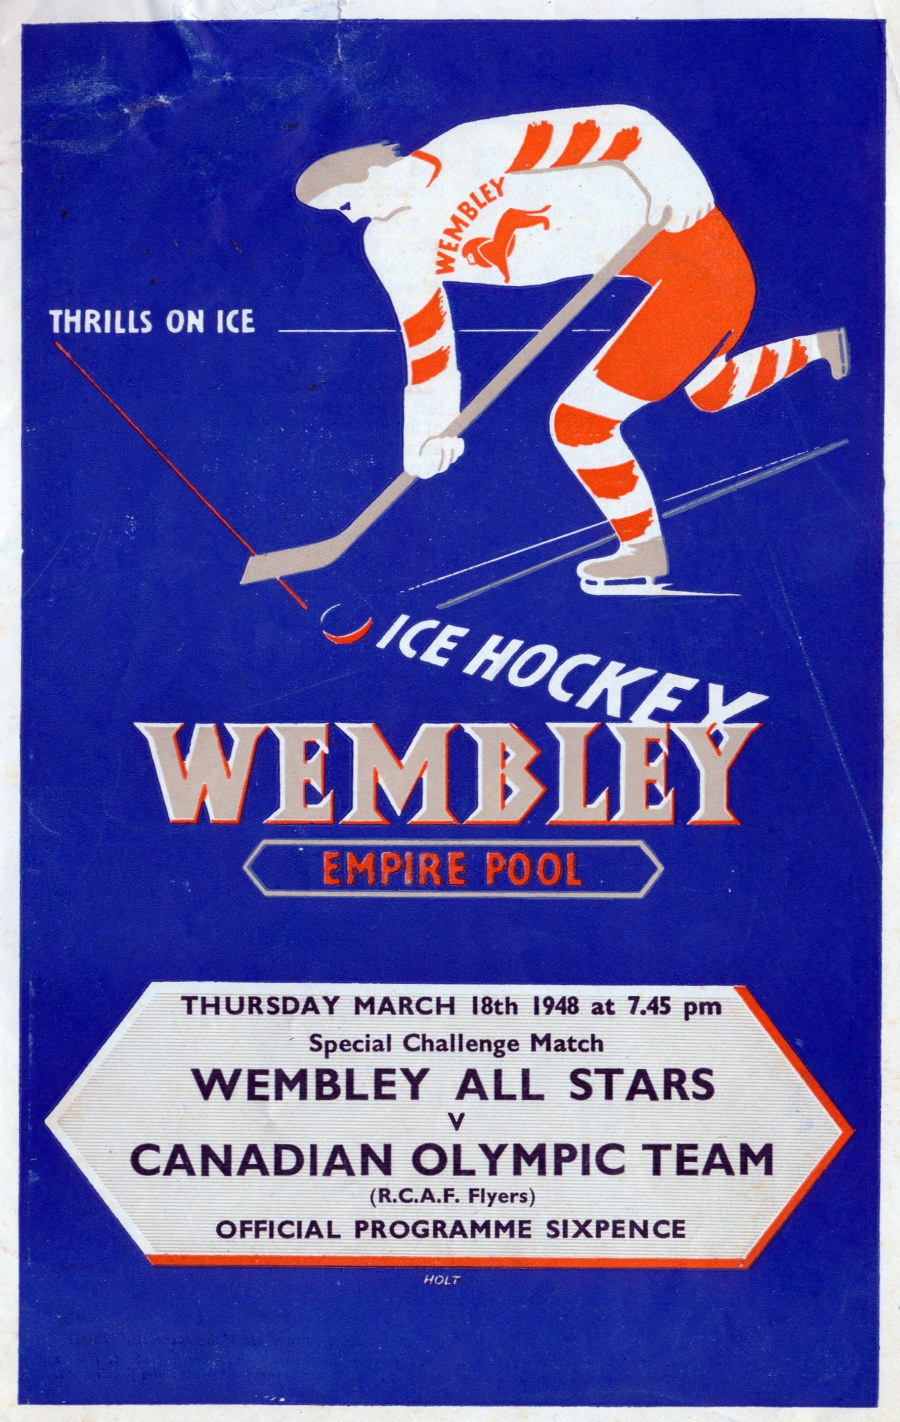 Photo: RCAF Flyers vs Wembley on Mar 18 1948